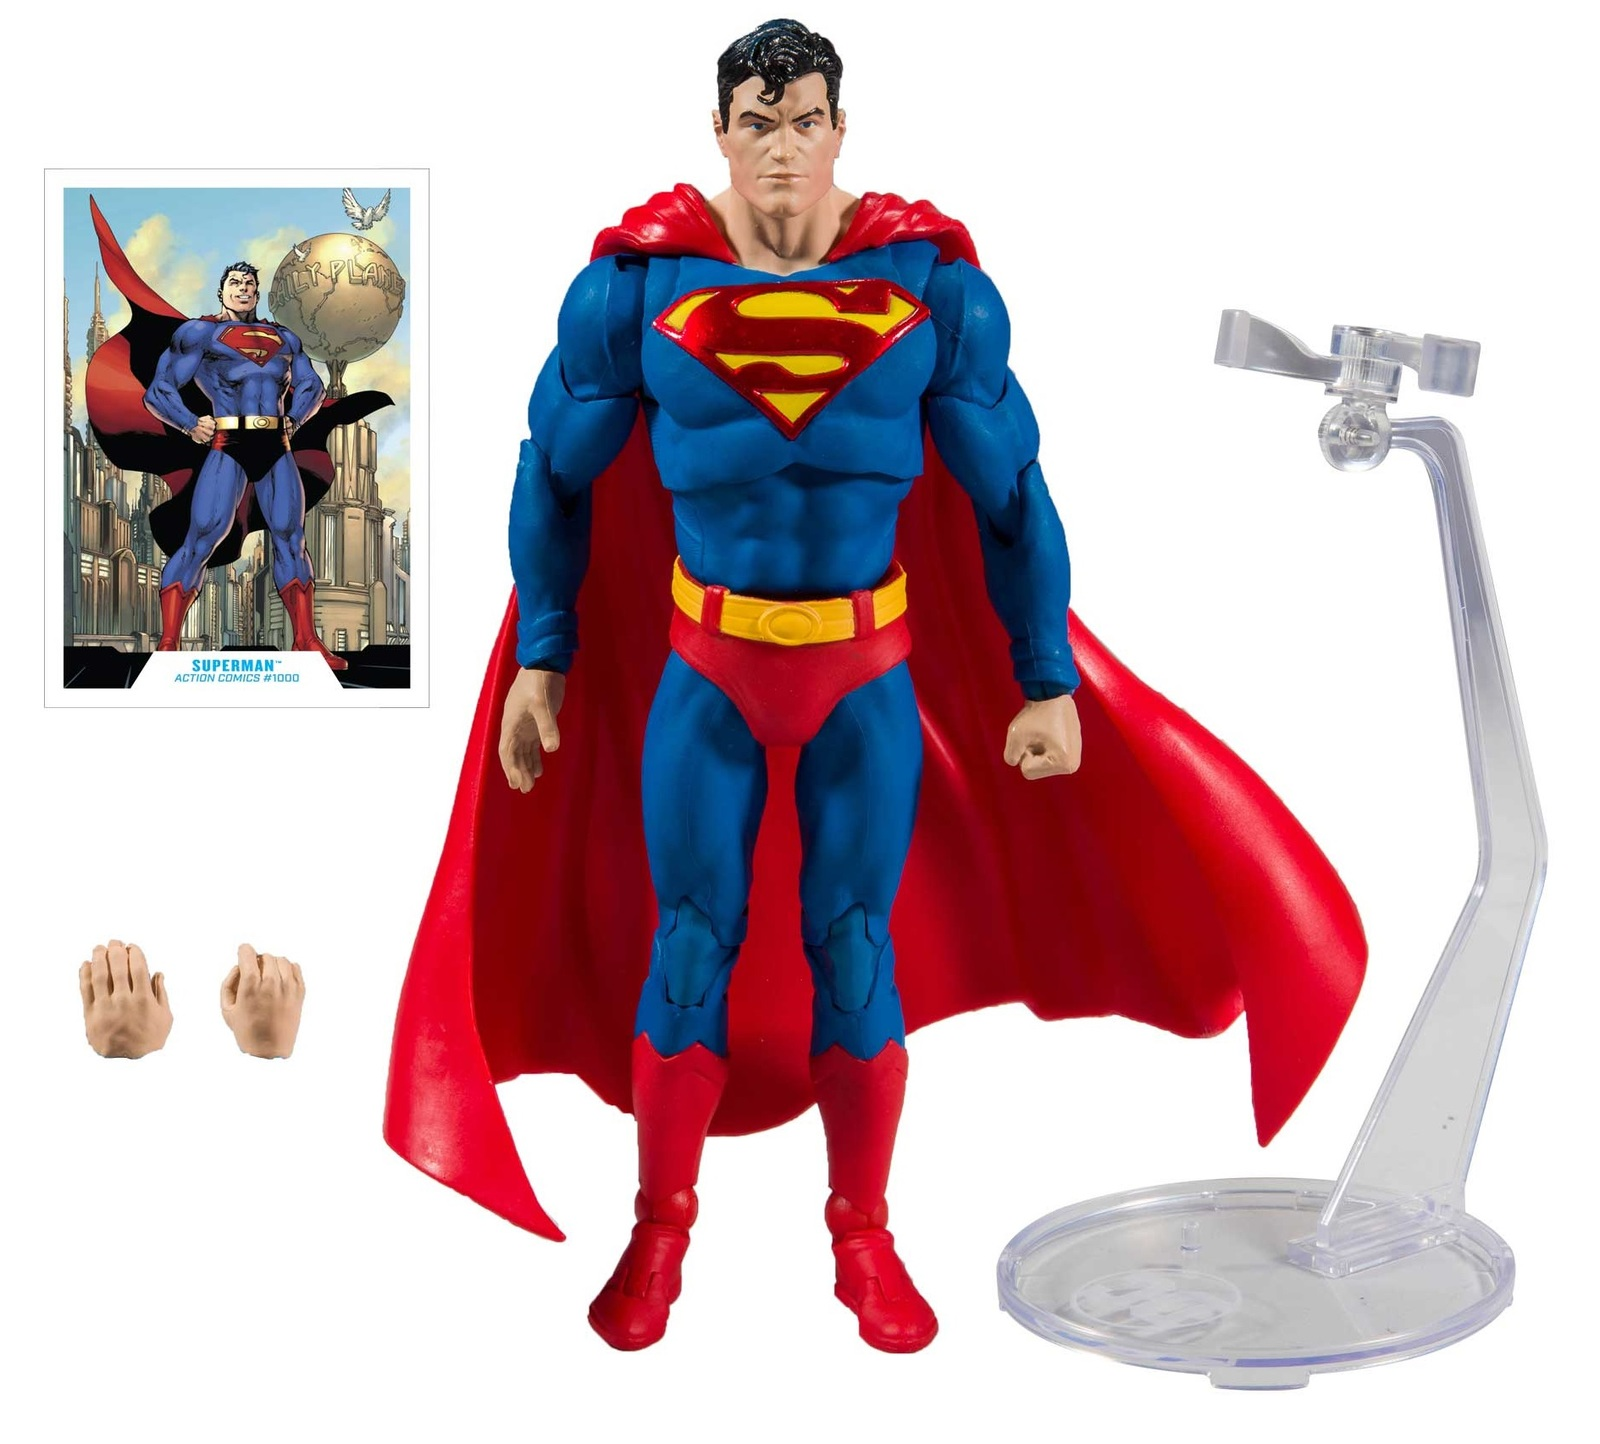 "DC Multiverse: Superman (Action Comics #1000) - 7"" Action Figure image"